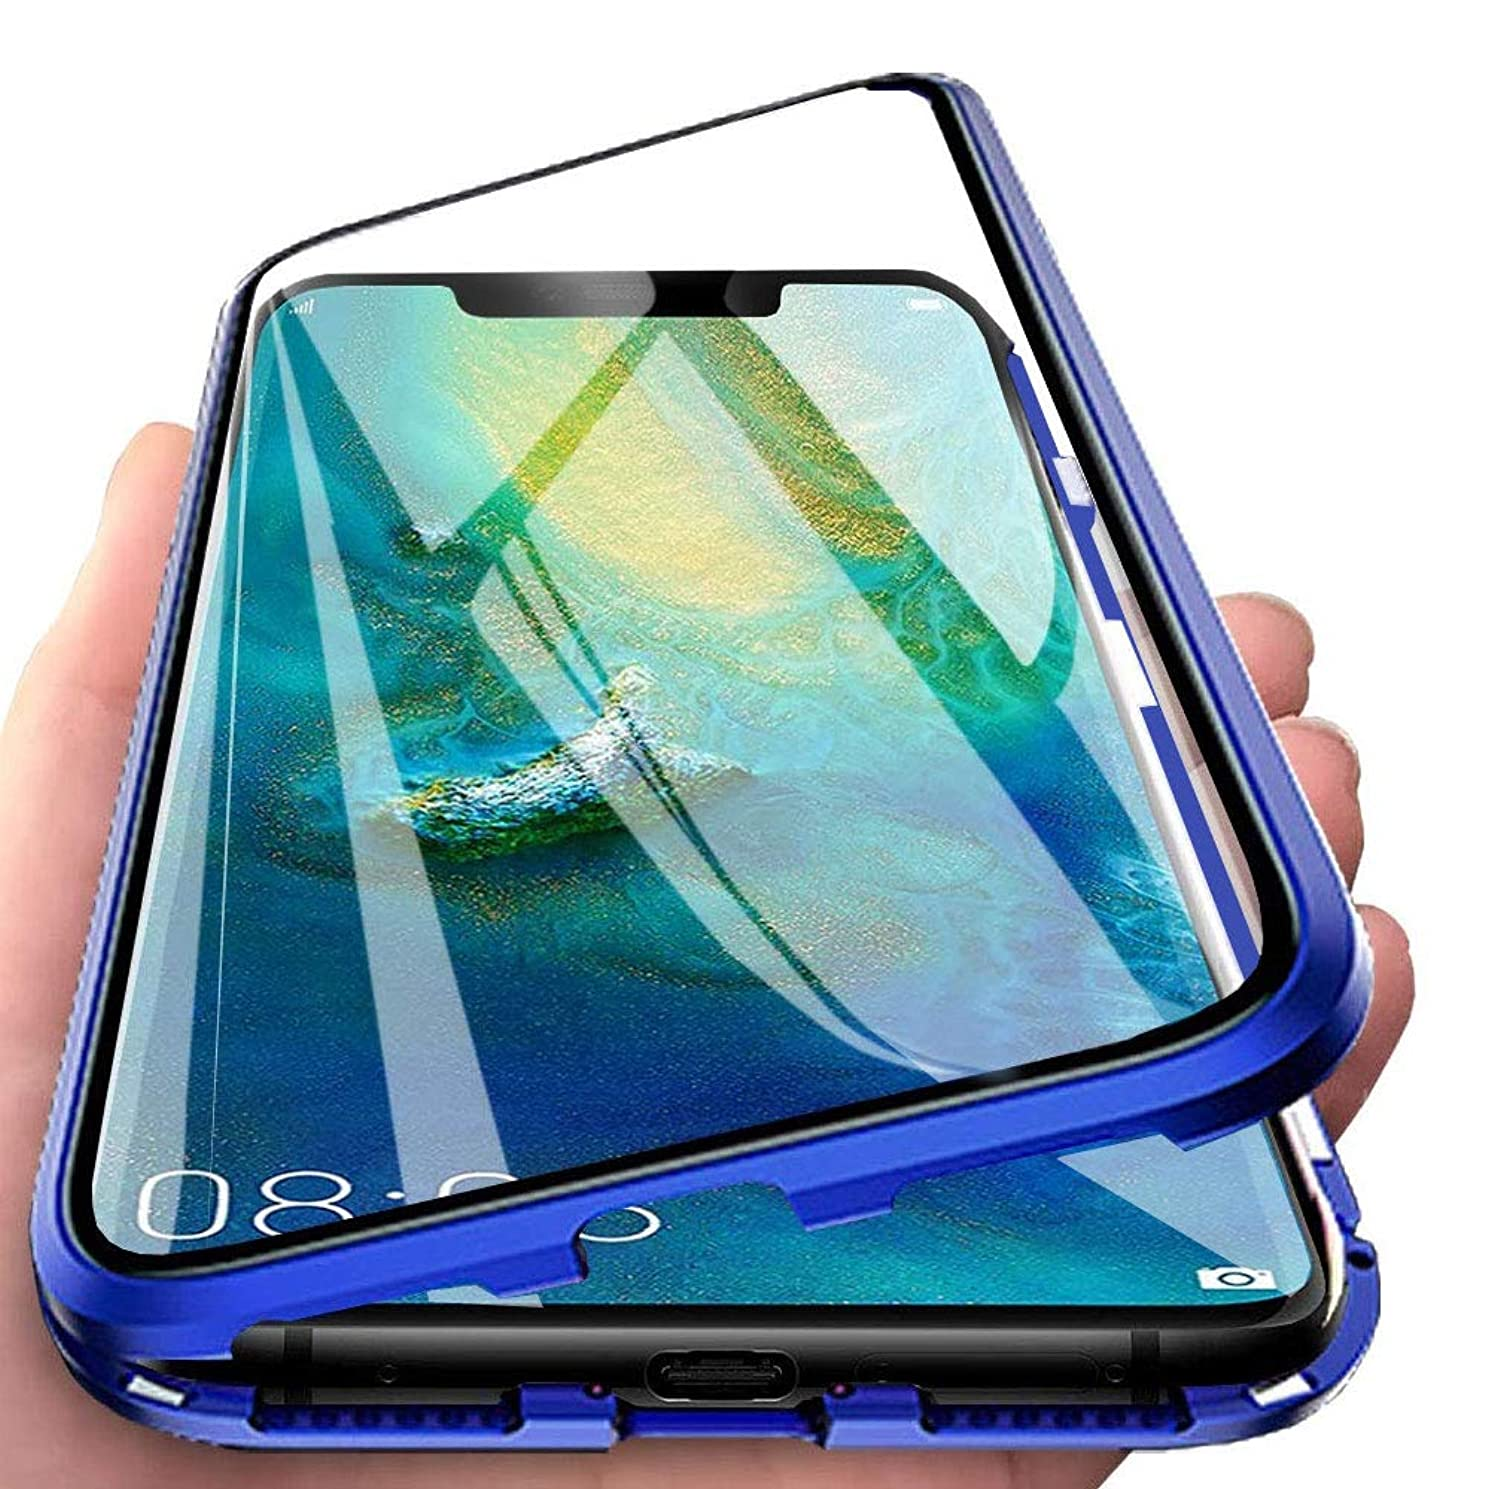 Wishcover Case for VIVO V15/S1 Cover Magnetic Adsorption Tech Powerful Magnets Built-in Metal Frame 360 Degree Protection Shockproof Metal Flip Cover Packed Screen Protector